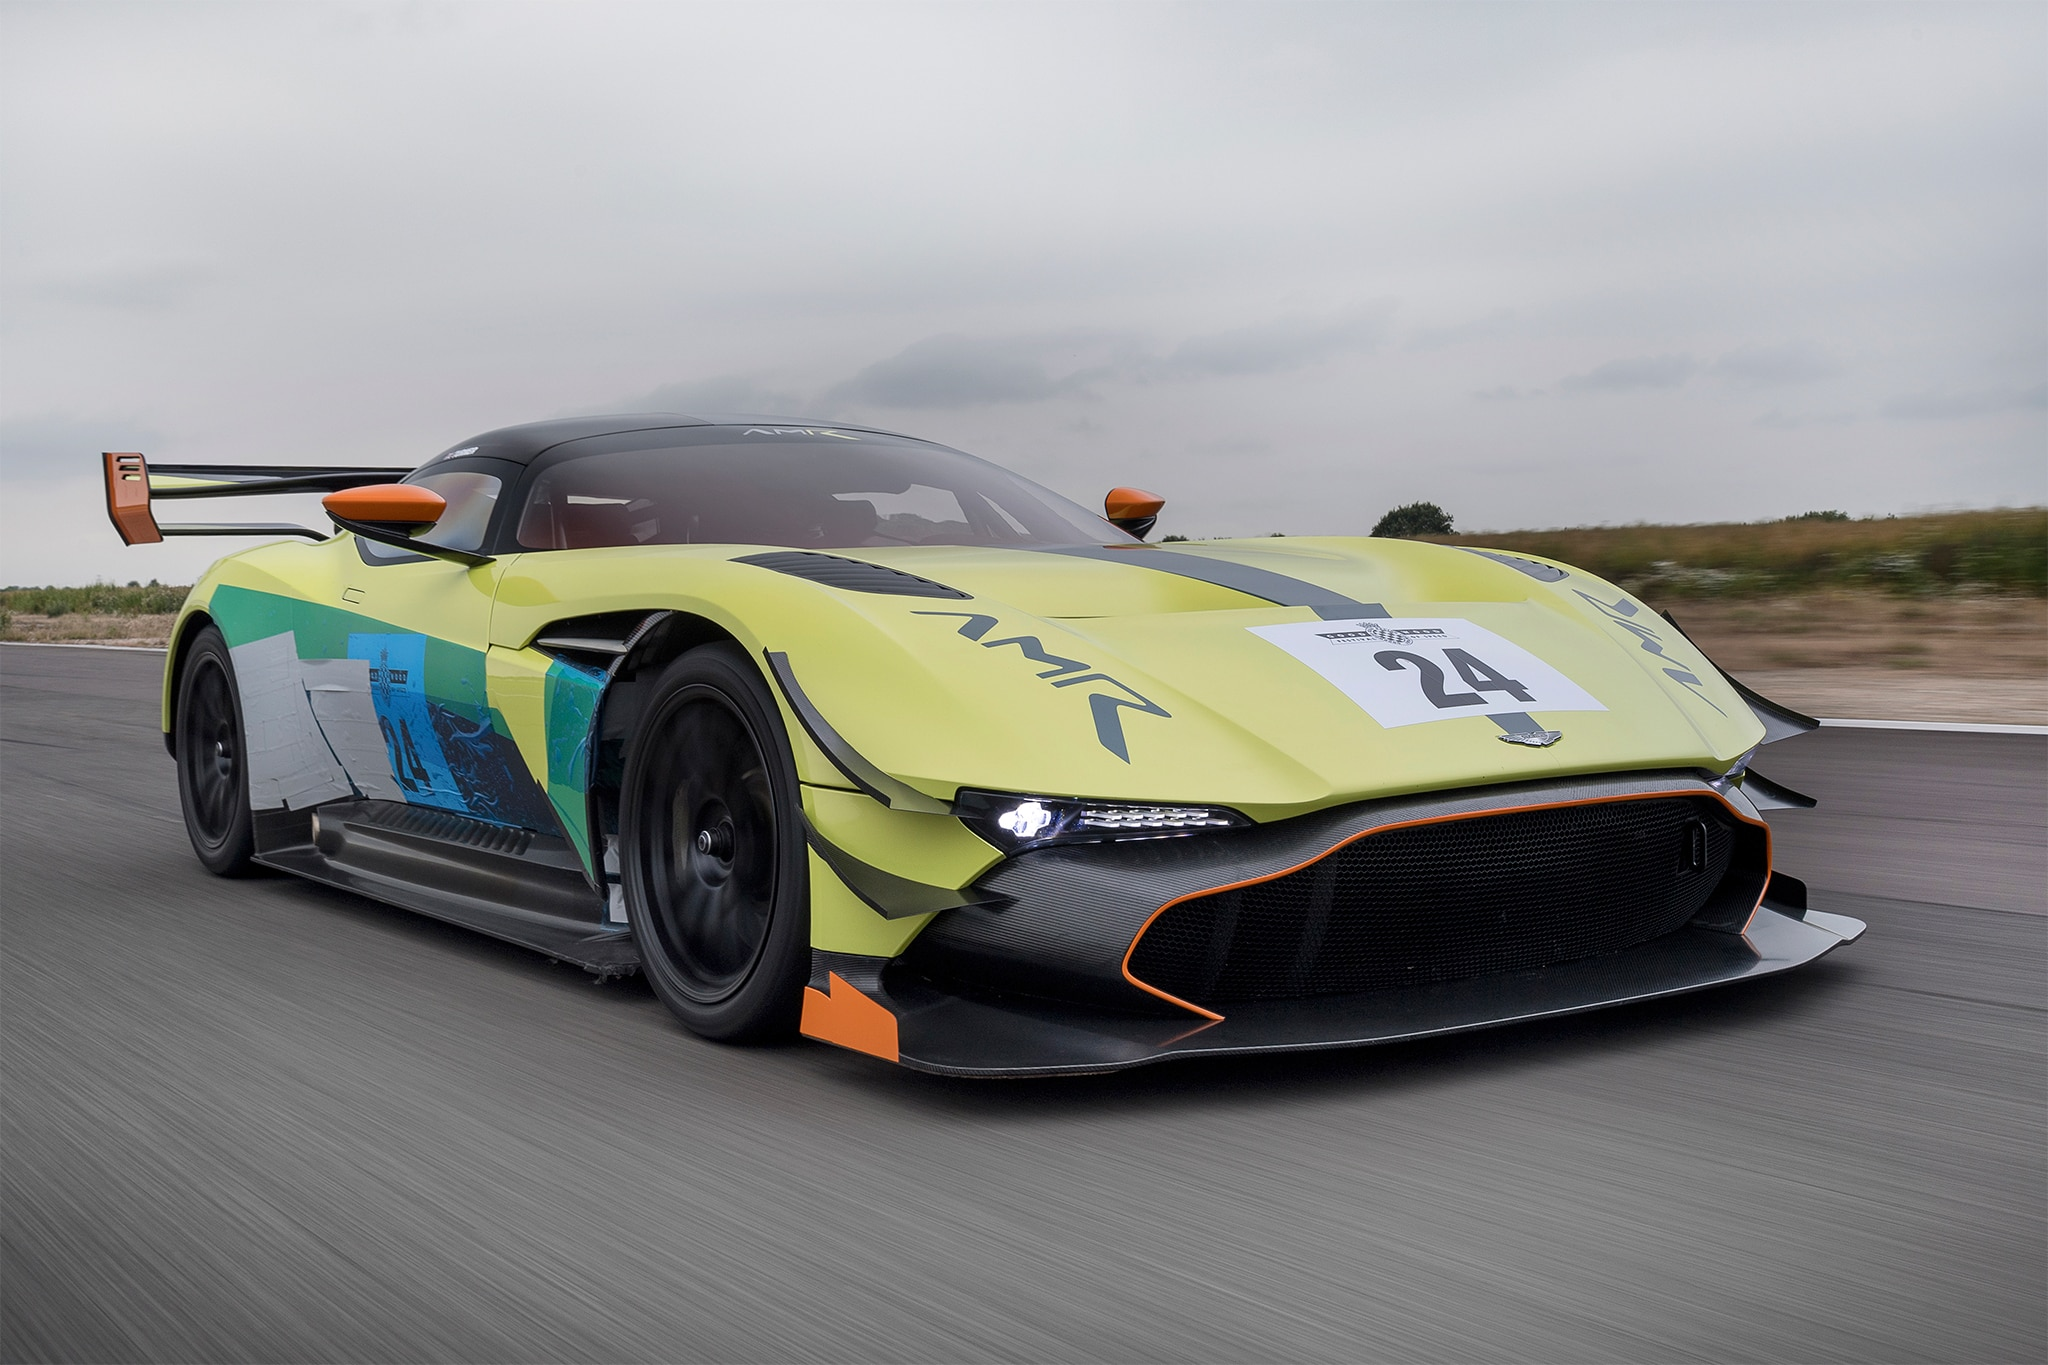 Aston Martin Vulcan gains AMR Pro upgrade